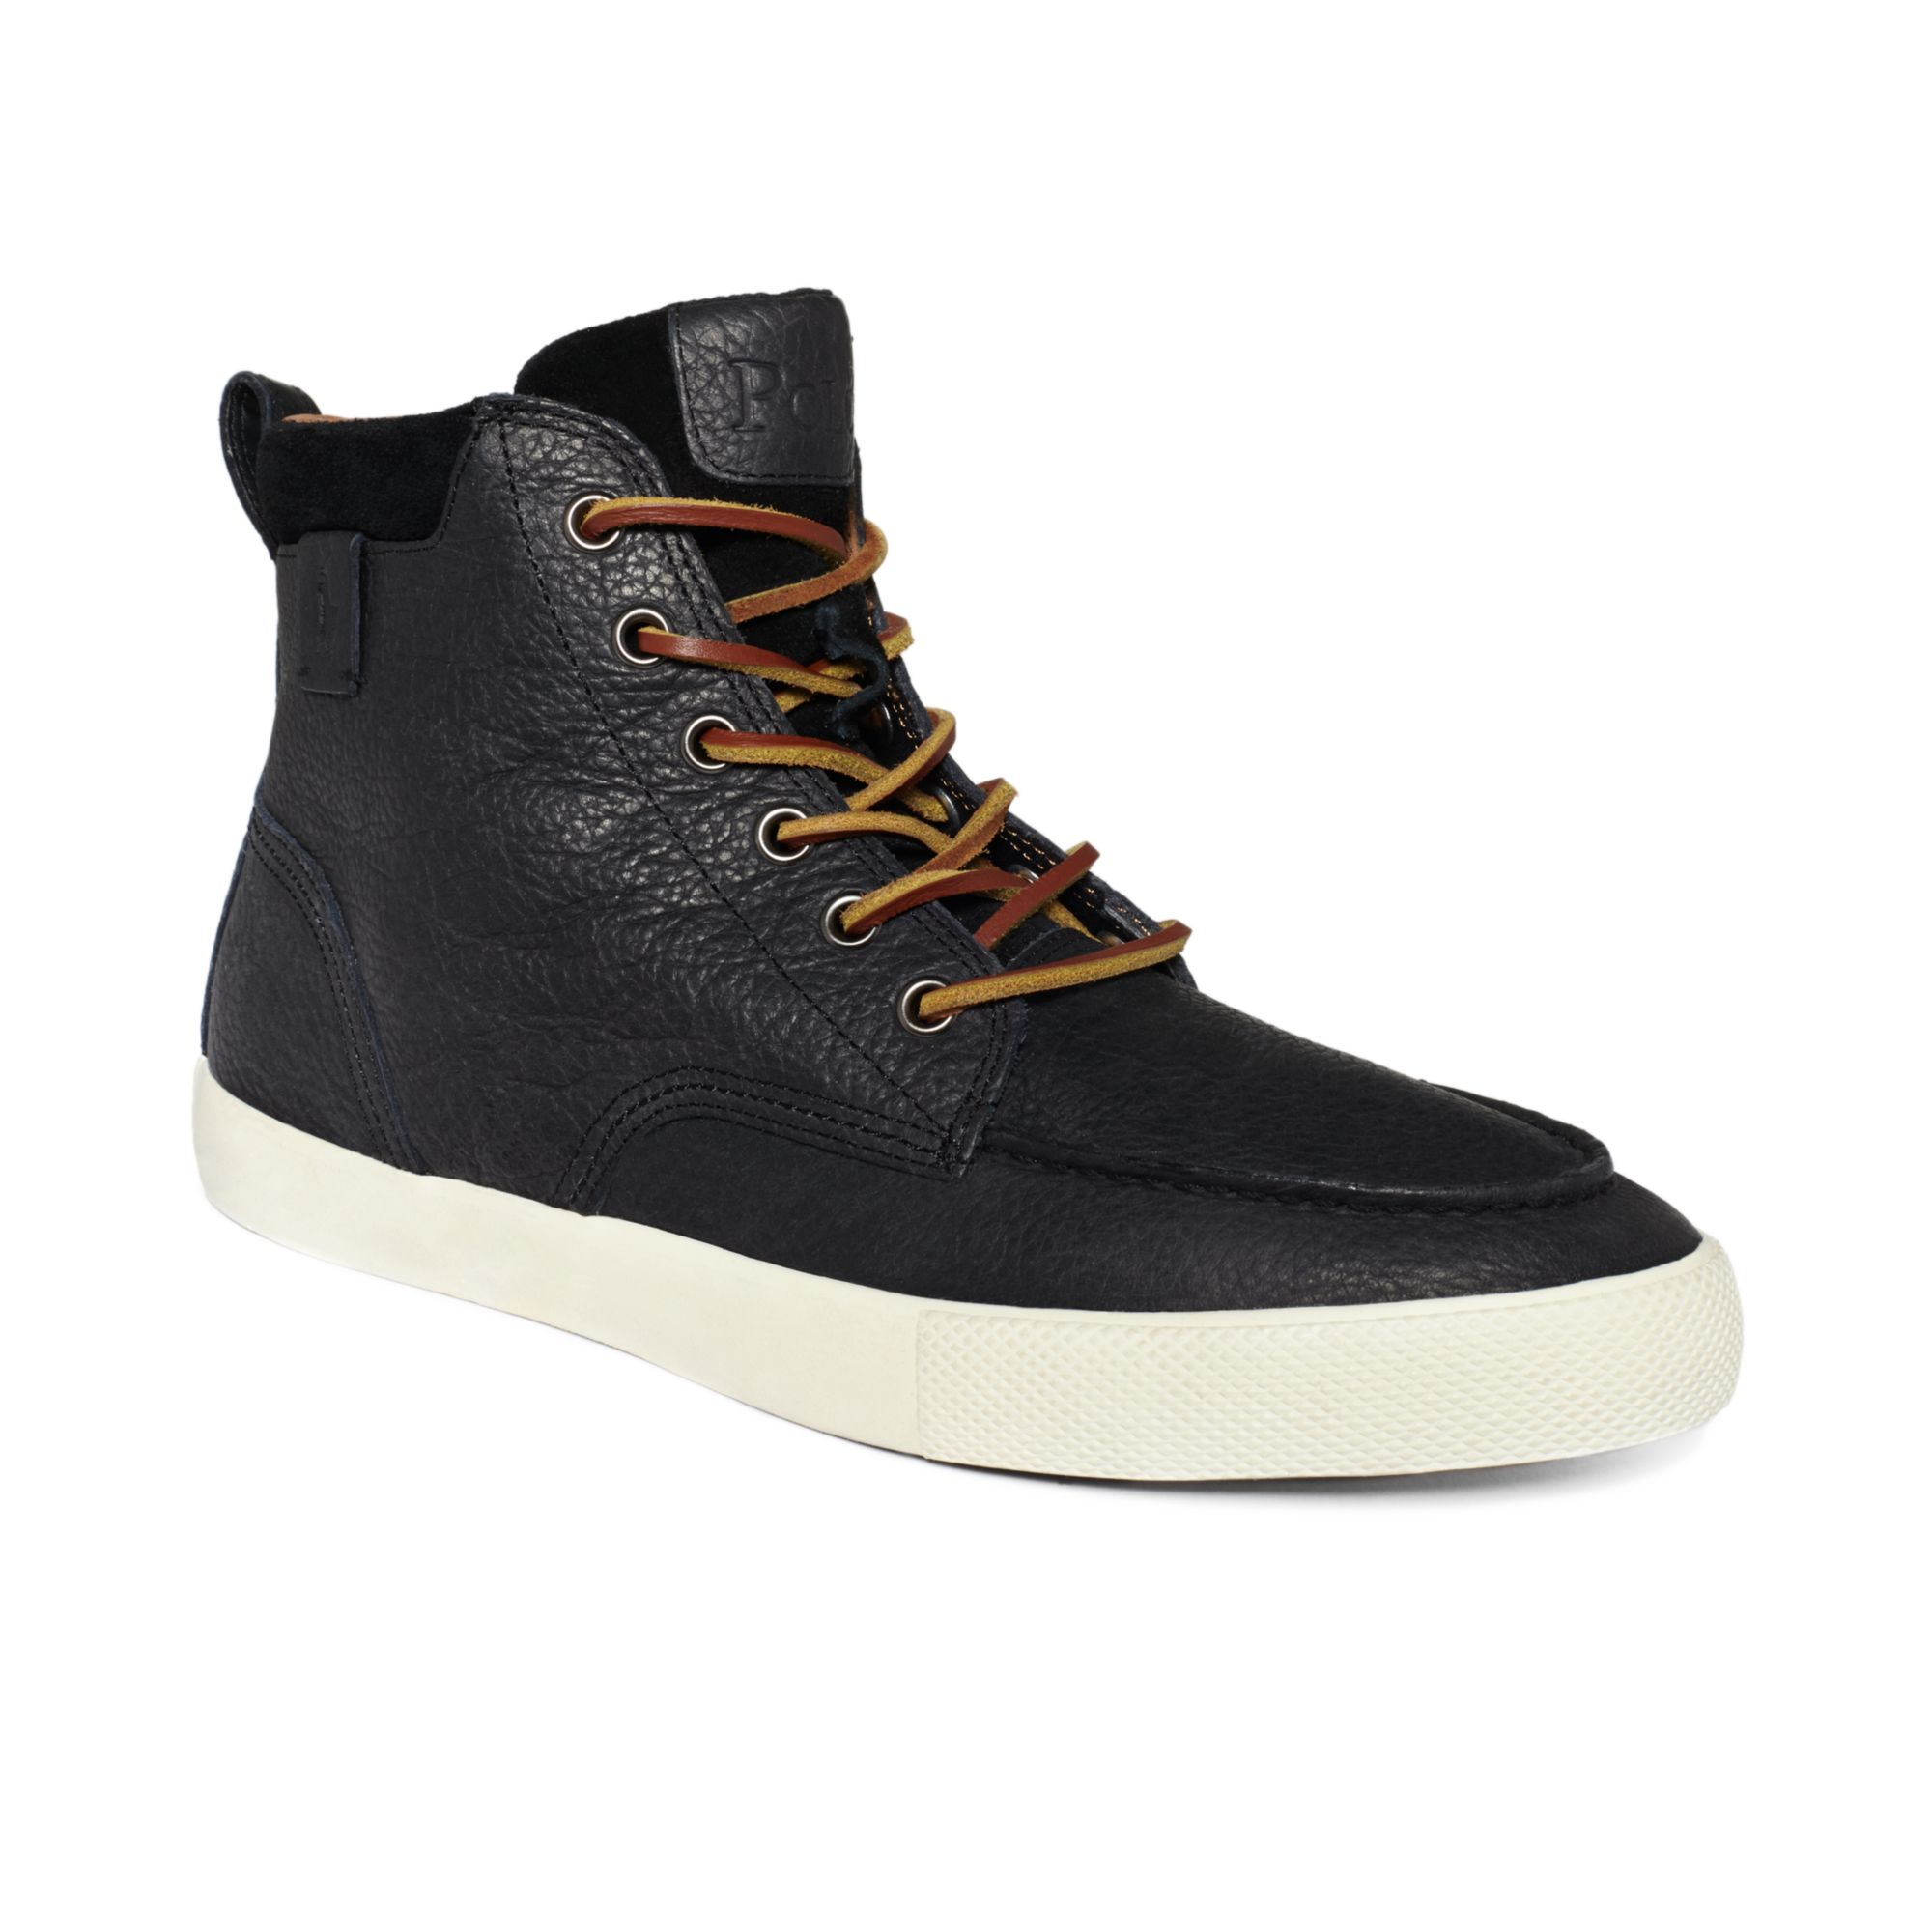 polo ralph lauren shoes tedd hi top sneakers in black for men lyst. Black Bedroom Furniture Sets. Home Design Ideas